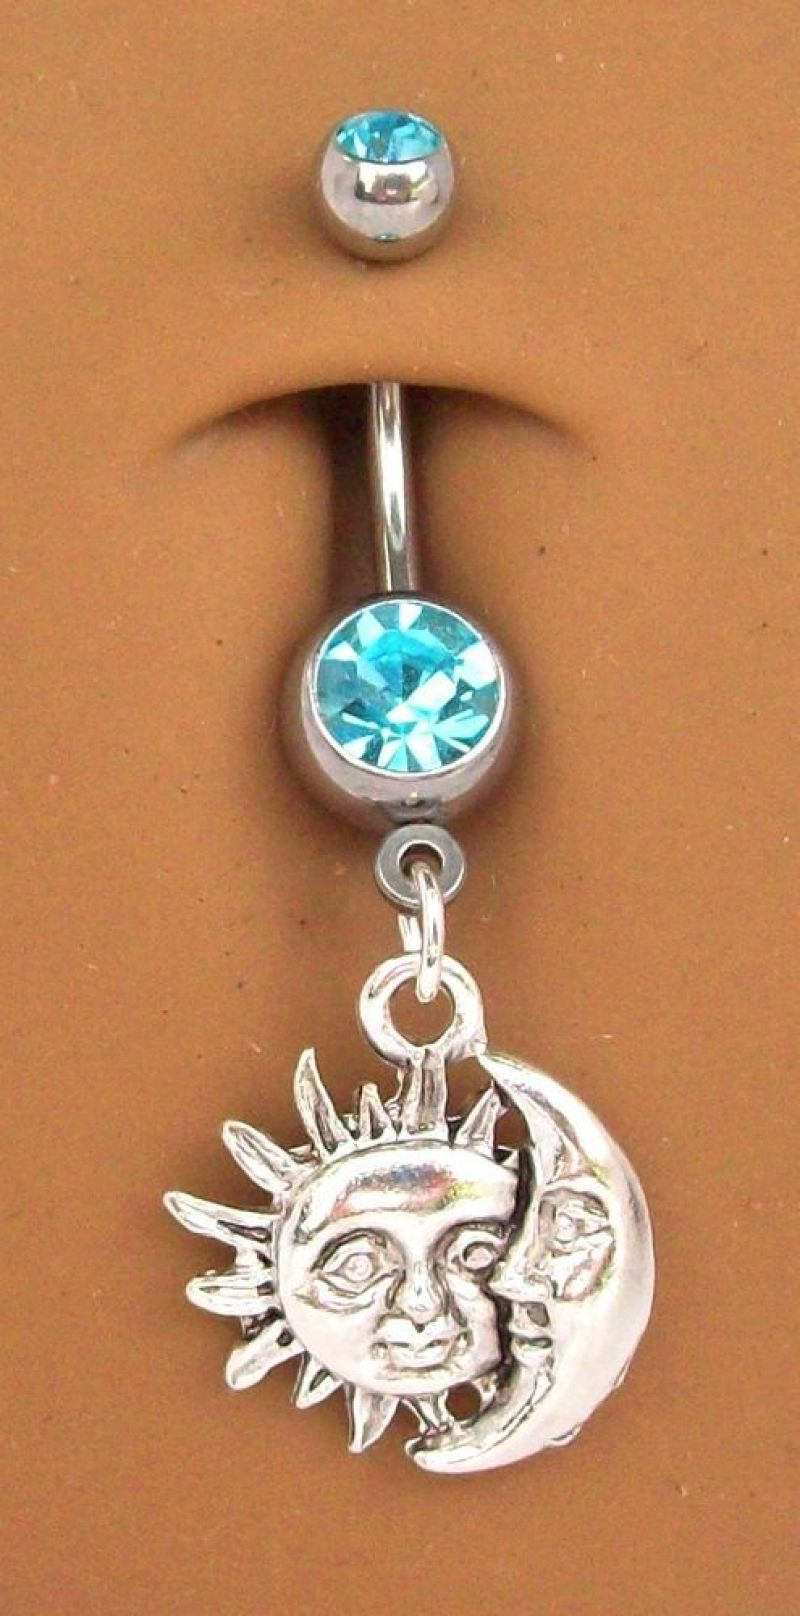 Body piercing jewelry types  Latest  Different Types of Belly Rings for Girls  Body Art